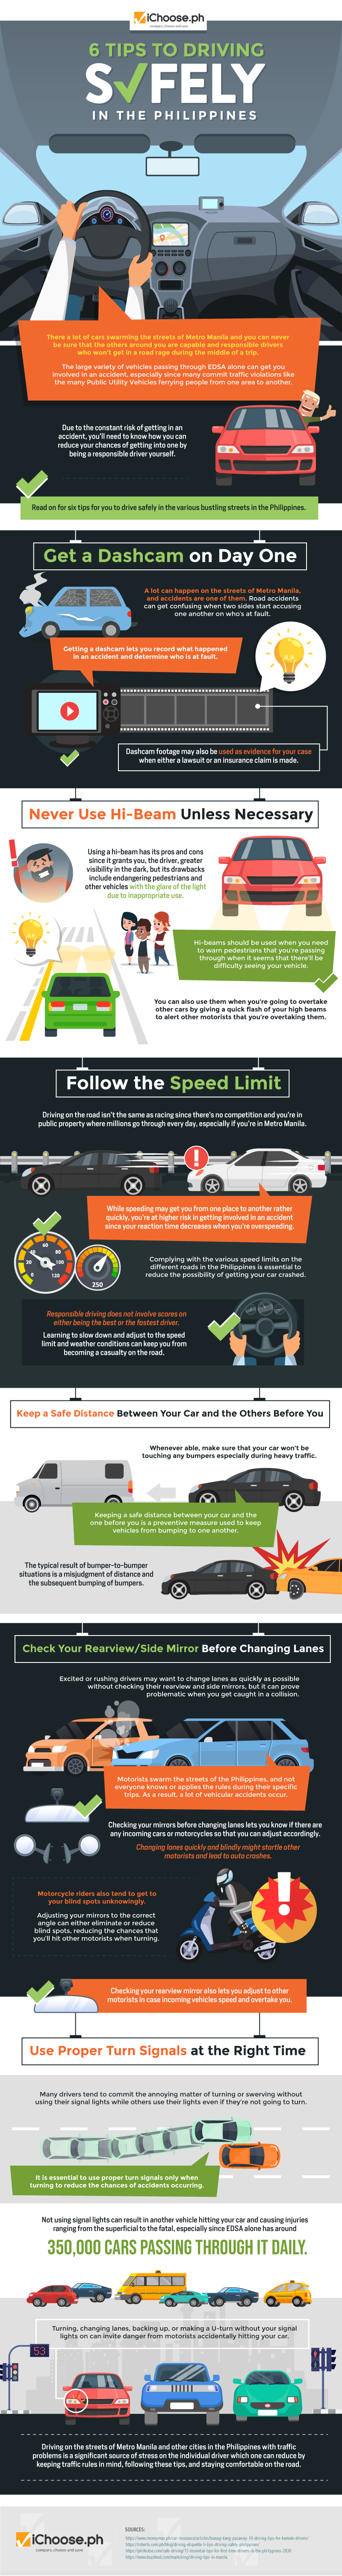 6 Tips to Driving Safely in the Philippines #infographic